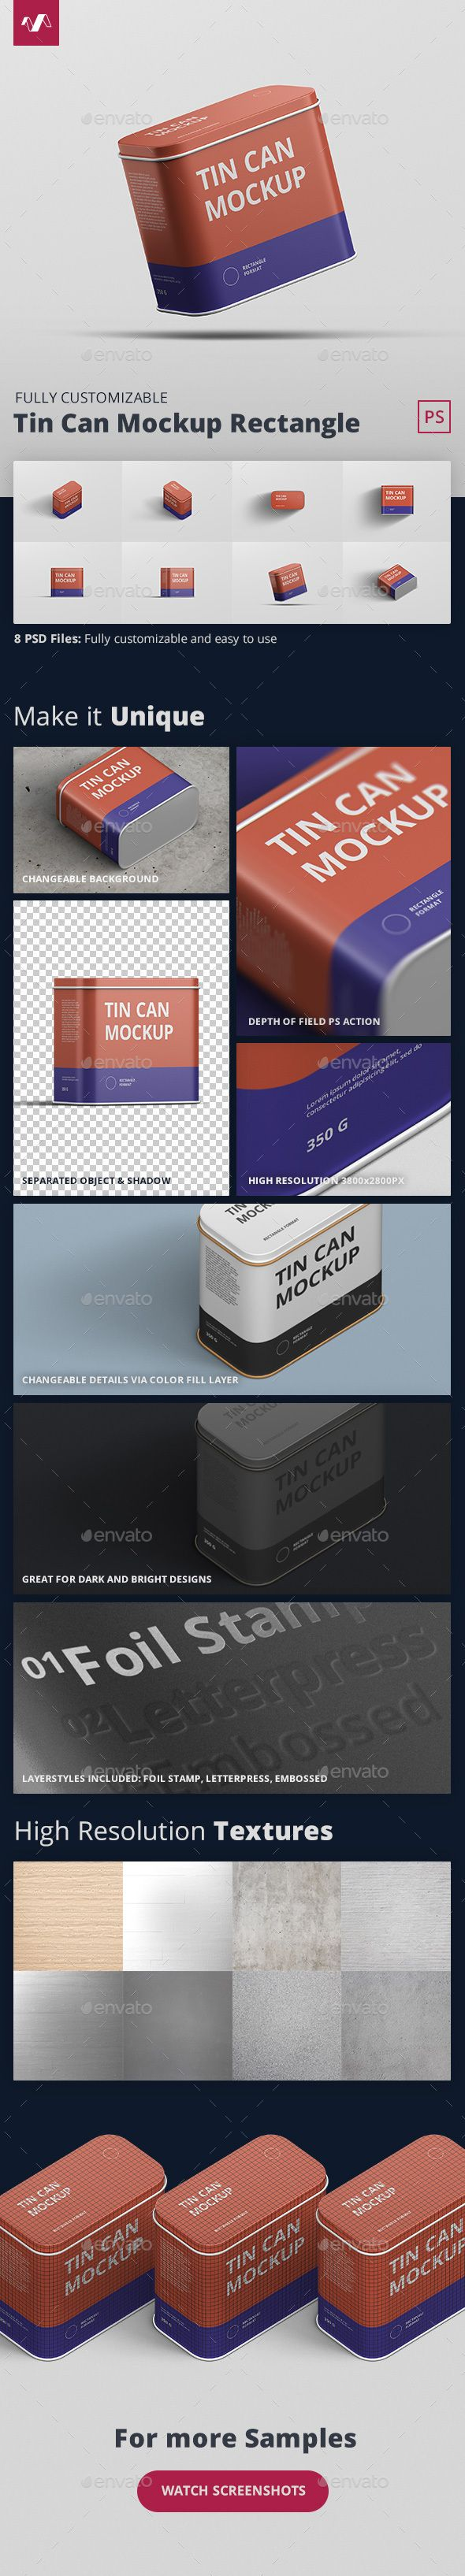 Tin Can Mockup Rectangle Free update